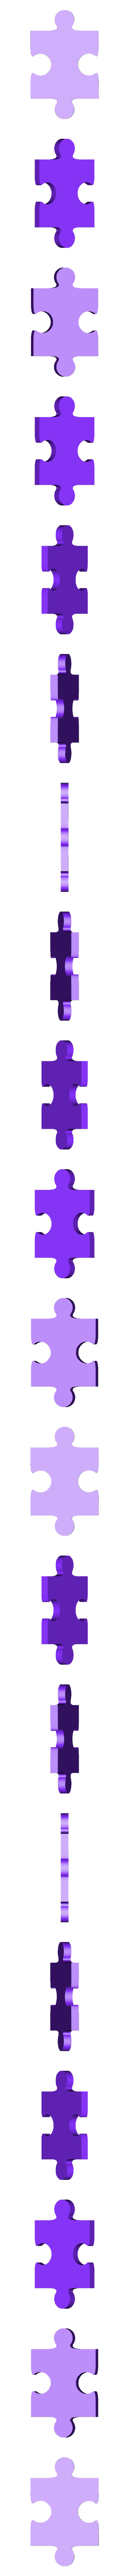 7.stl Download free STL file Autism Awareness Month Puzzle 2019 • Model to 3D print, Dsk